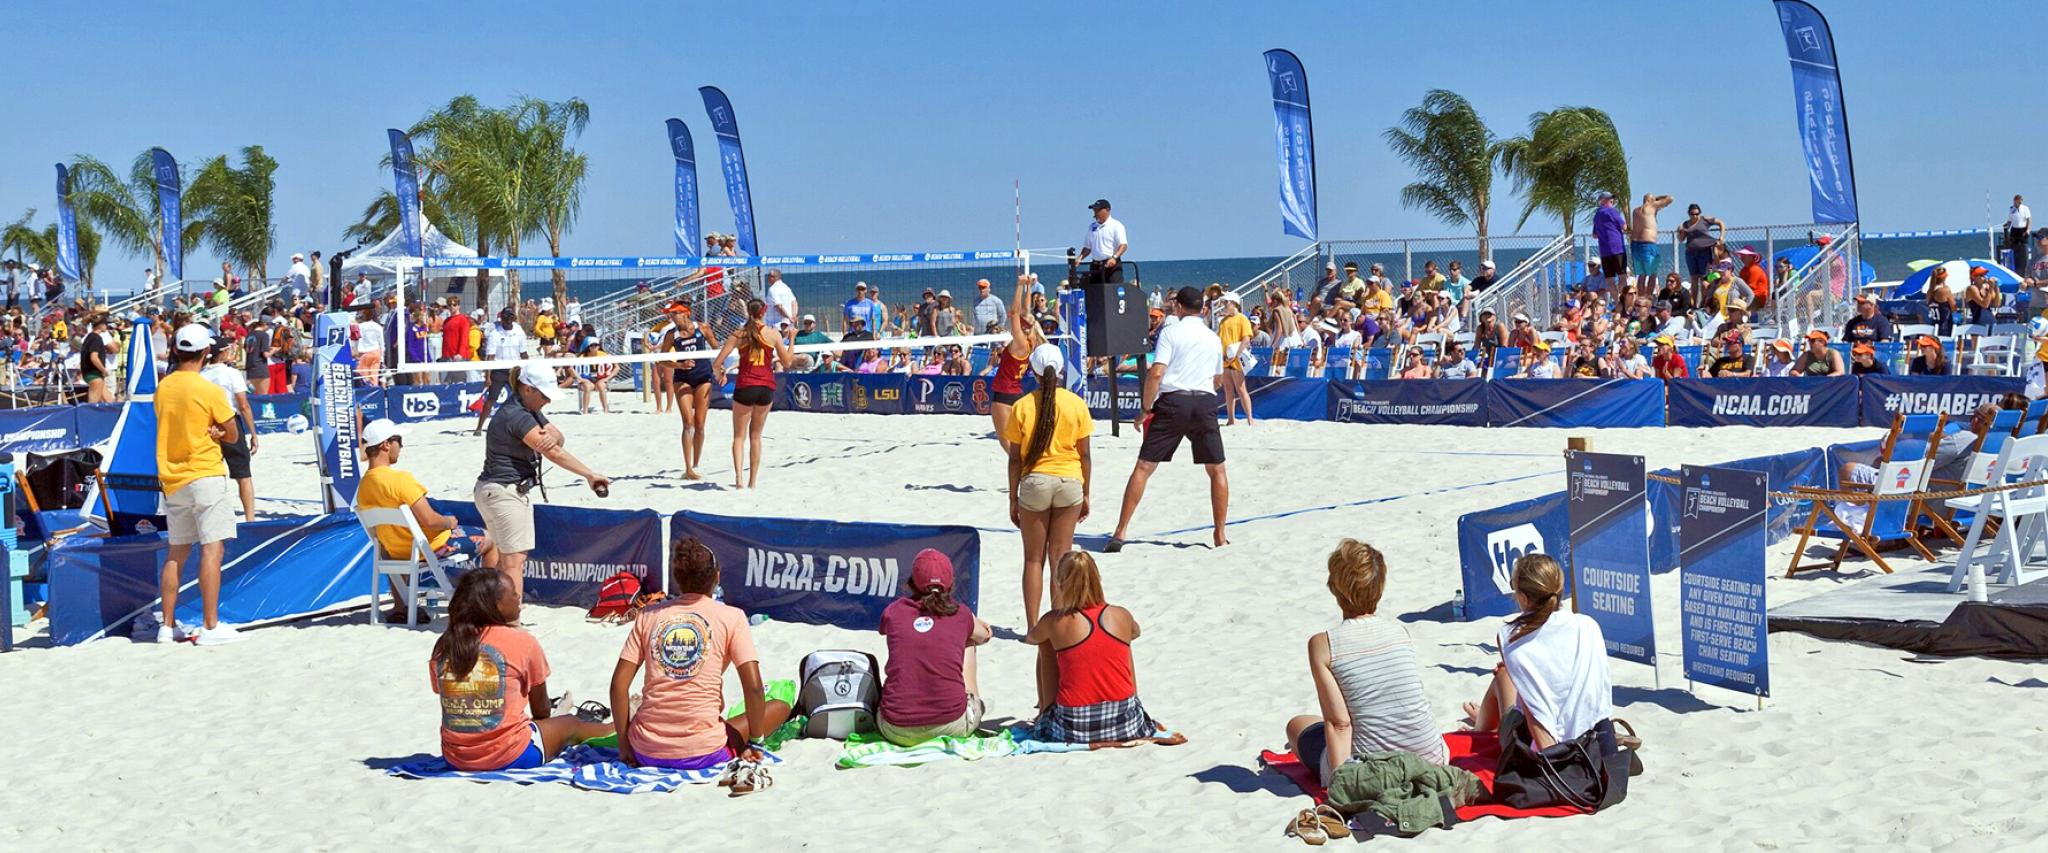 NCAA Beach Volleyball National Championship in Gulf Shores Alabama